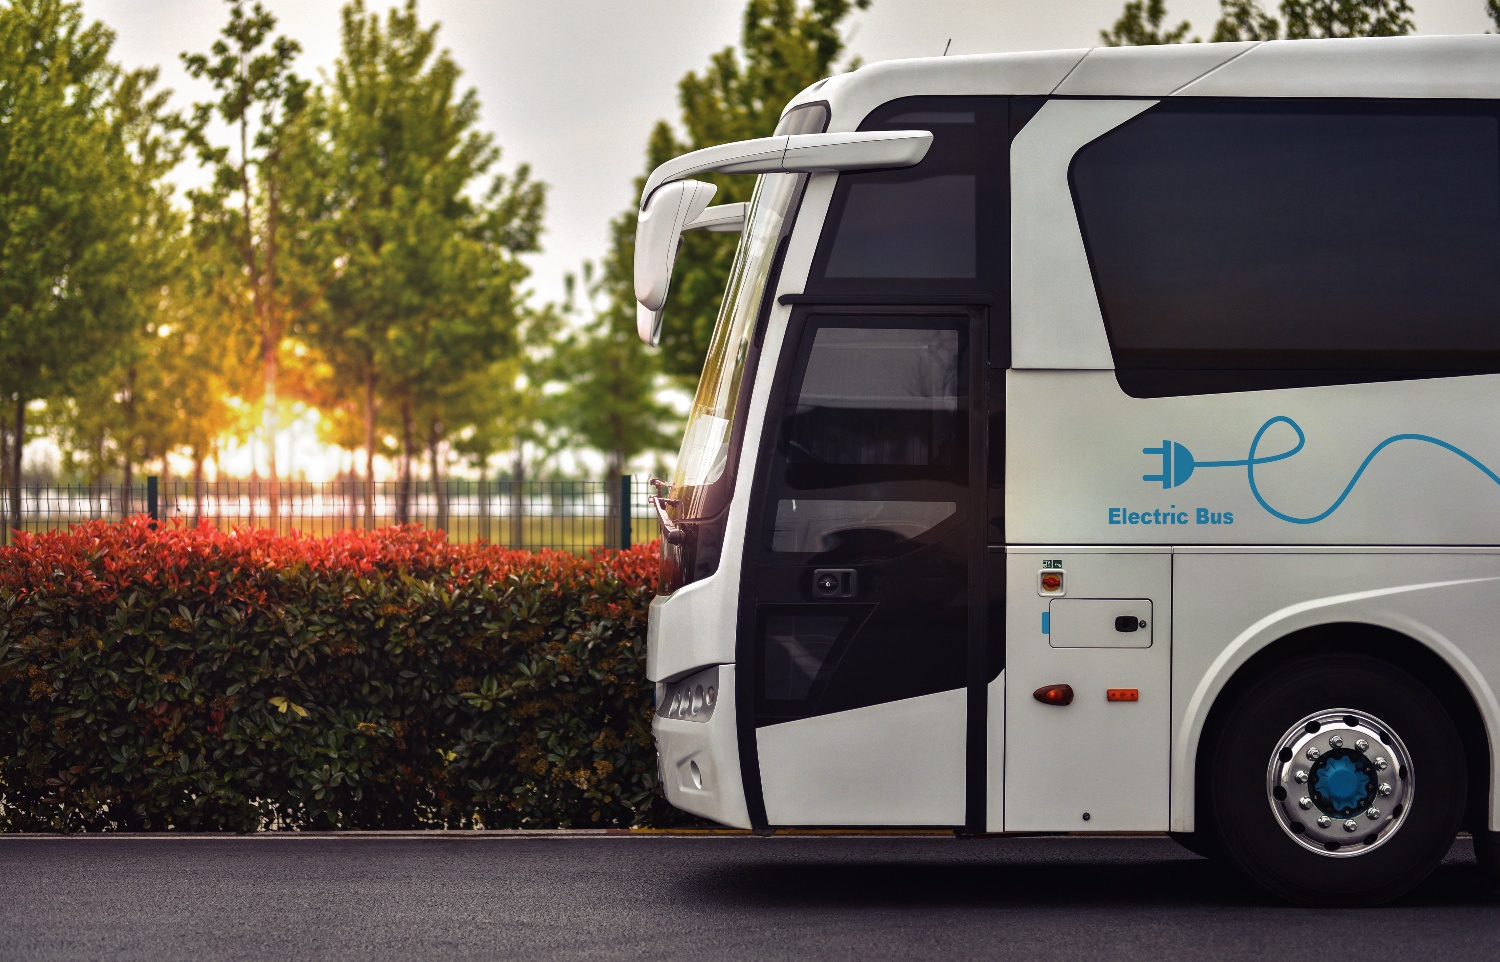 Electric Bus funded by the ZETF